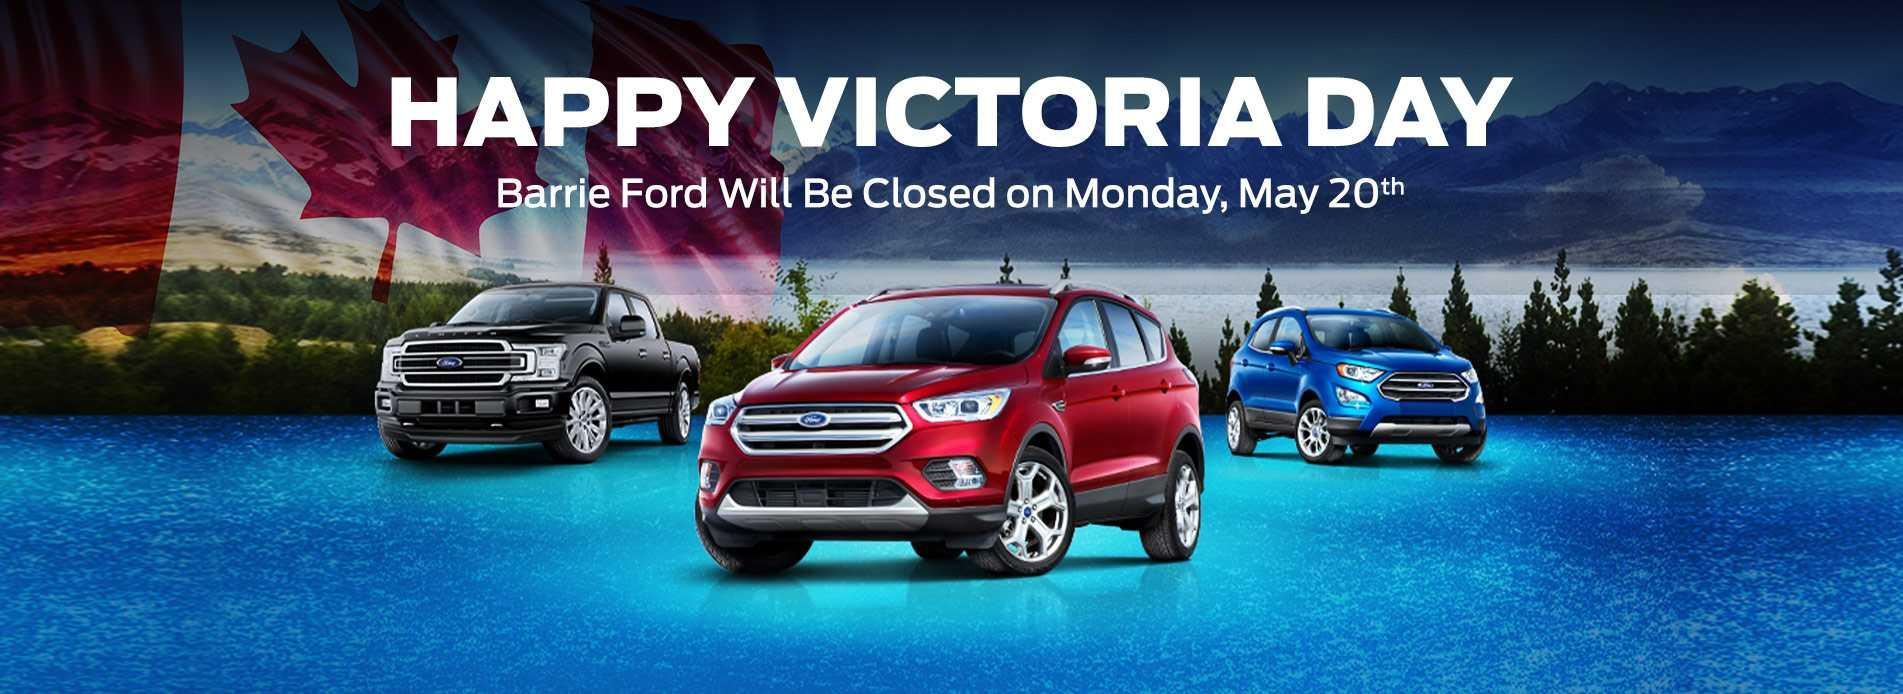 Victoria Day Barrie Ford